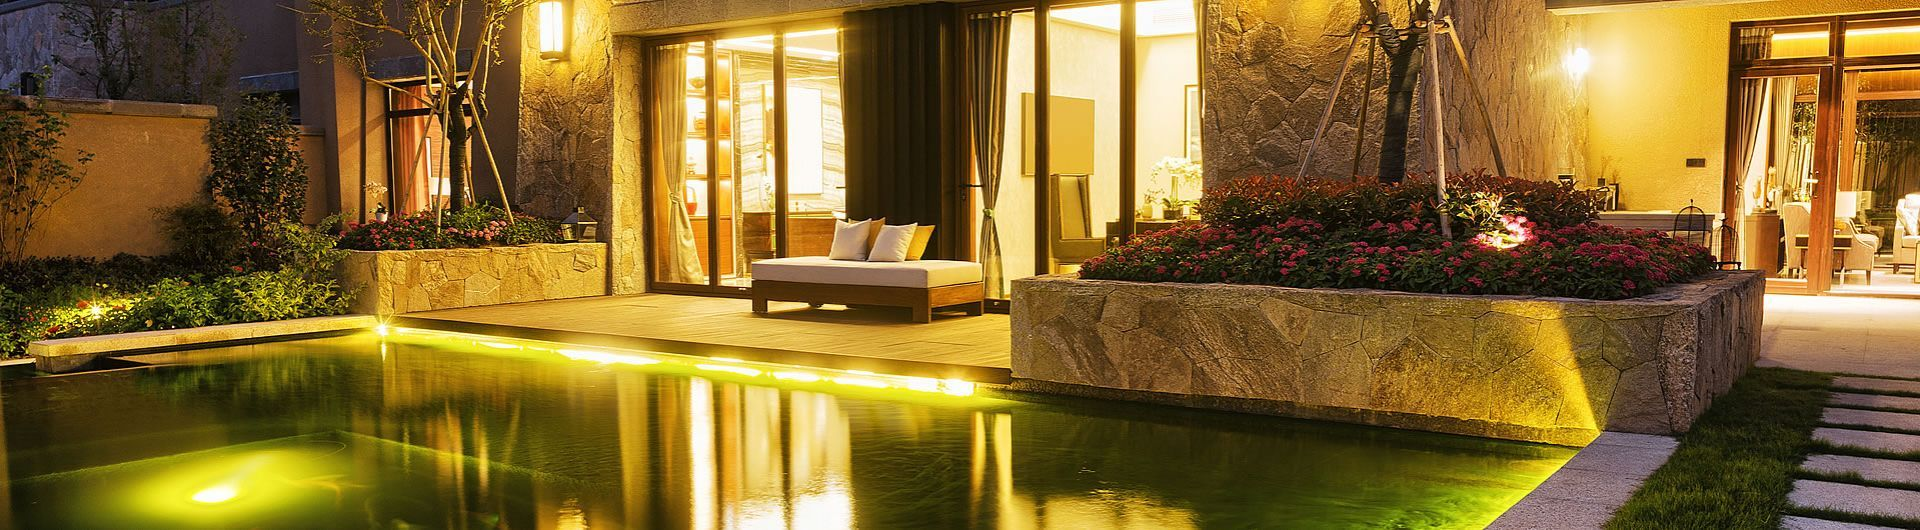 Evening pool and patio